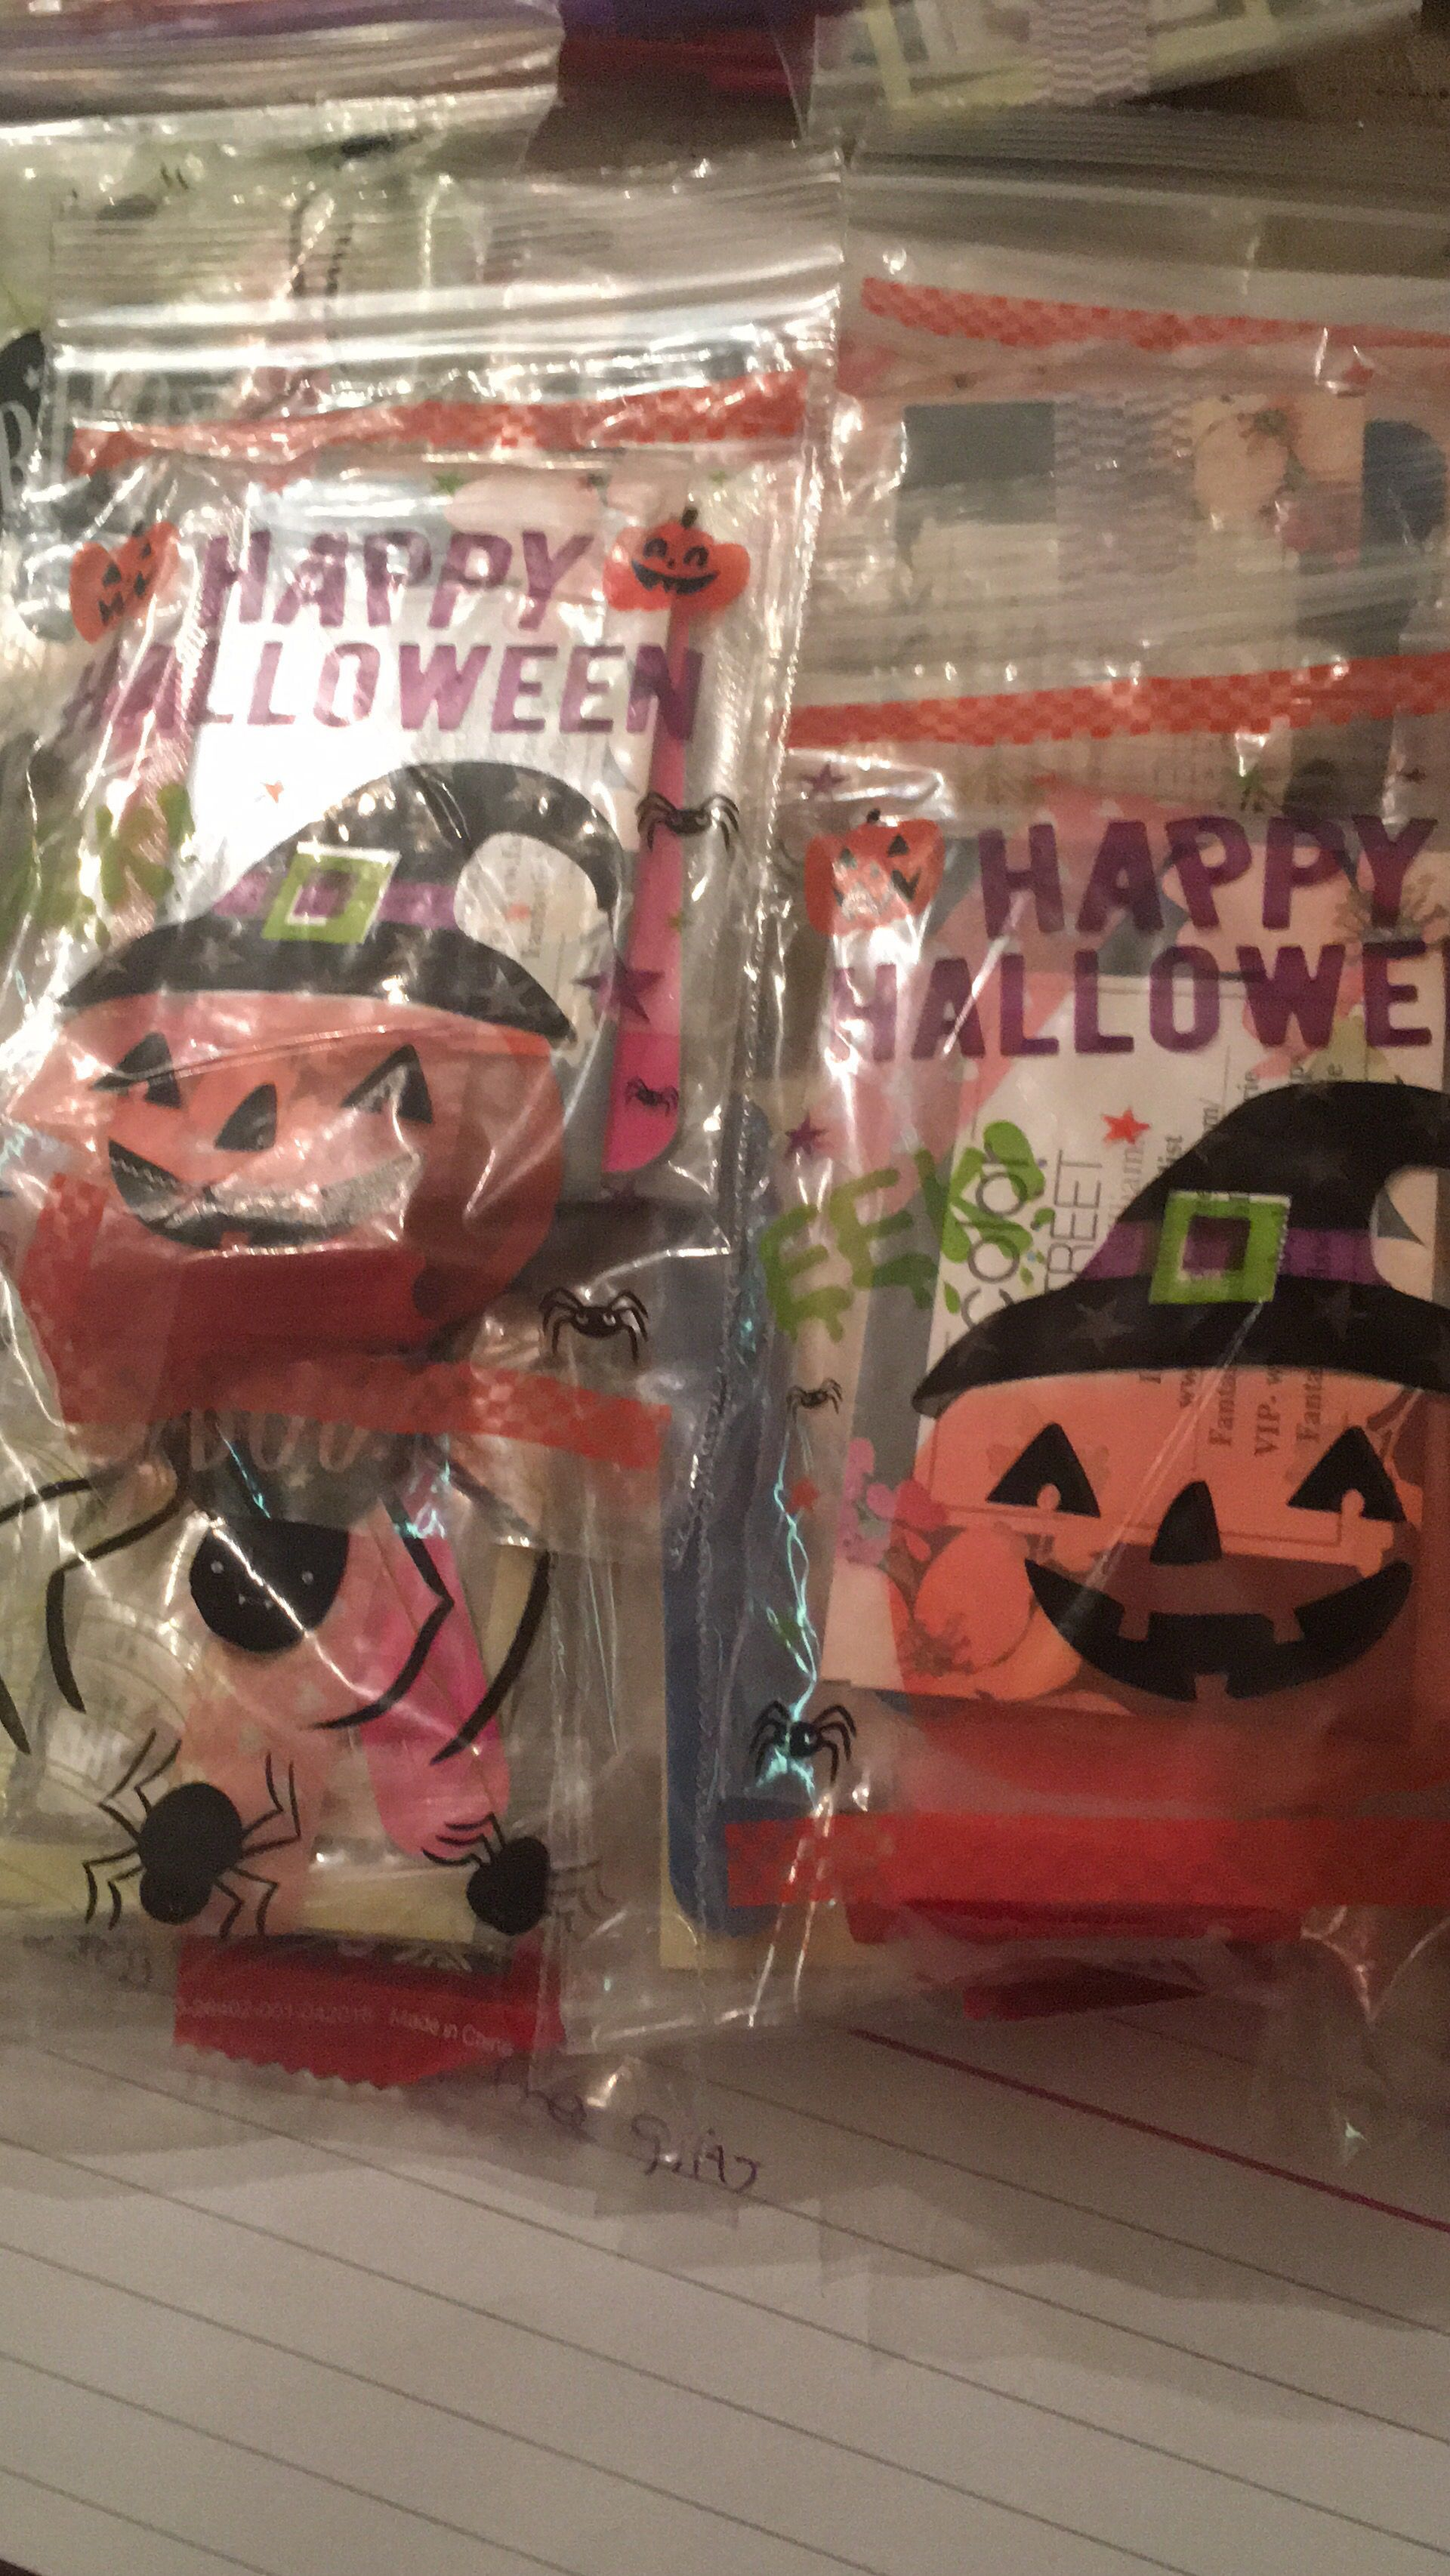 Send me Samples!! Halloween bags, Halloween goodie bags